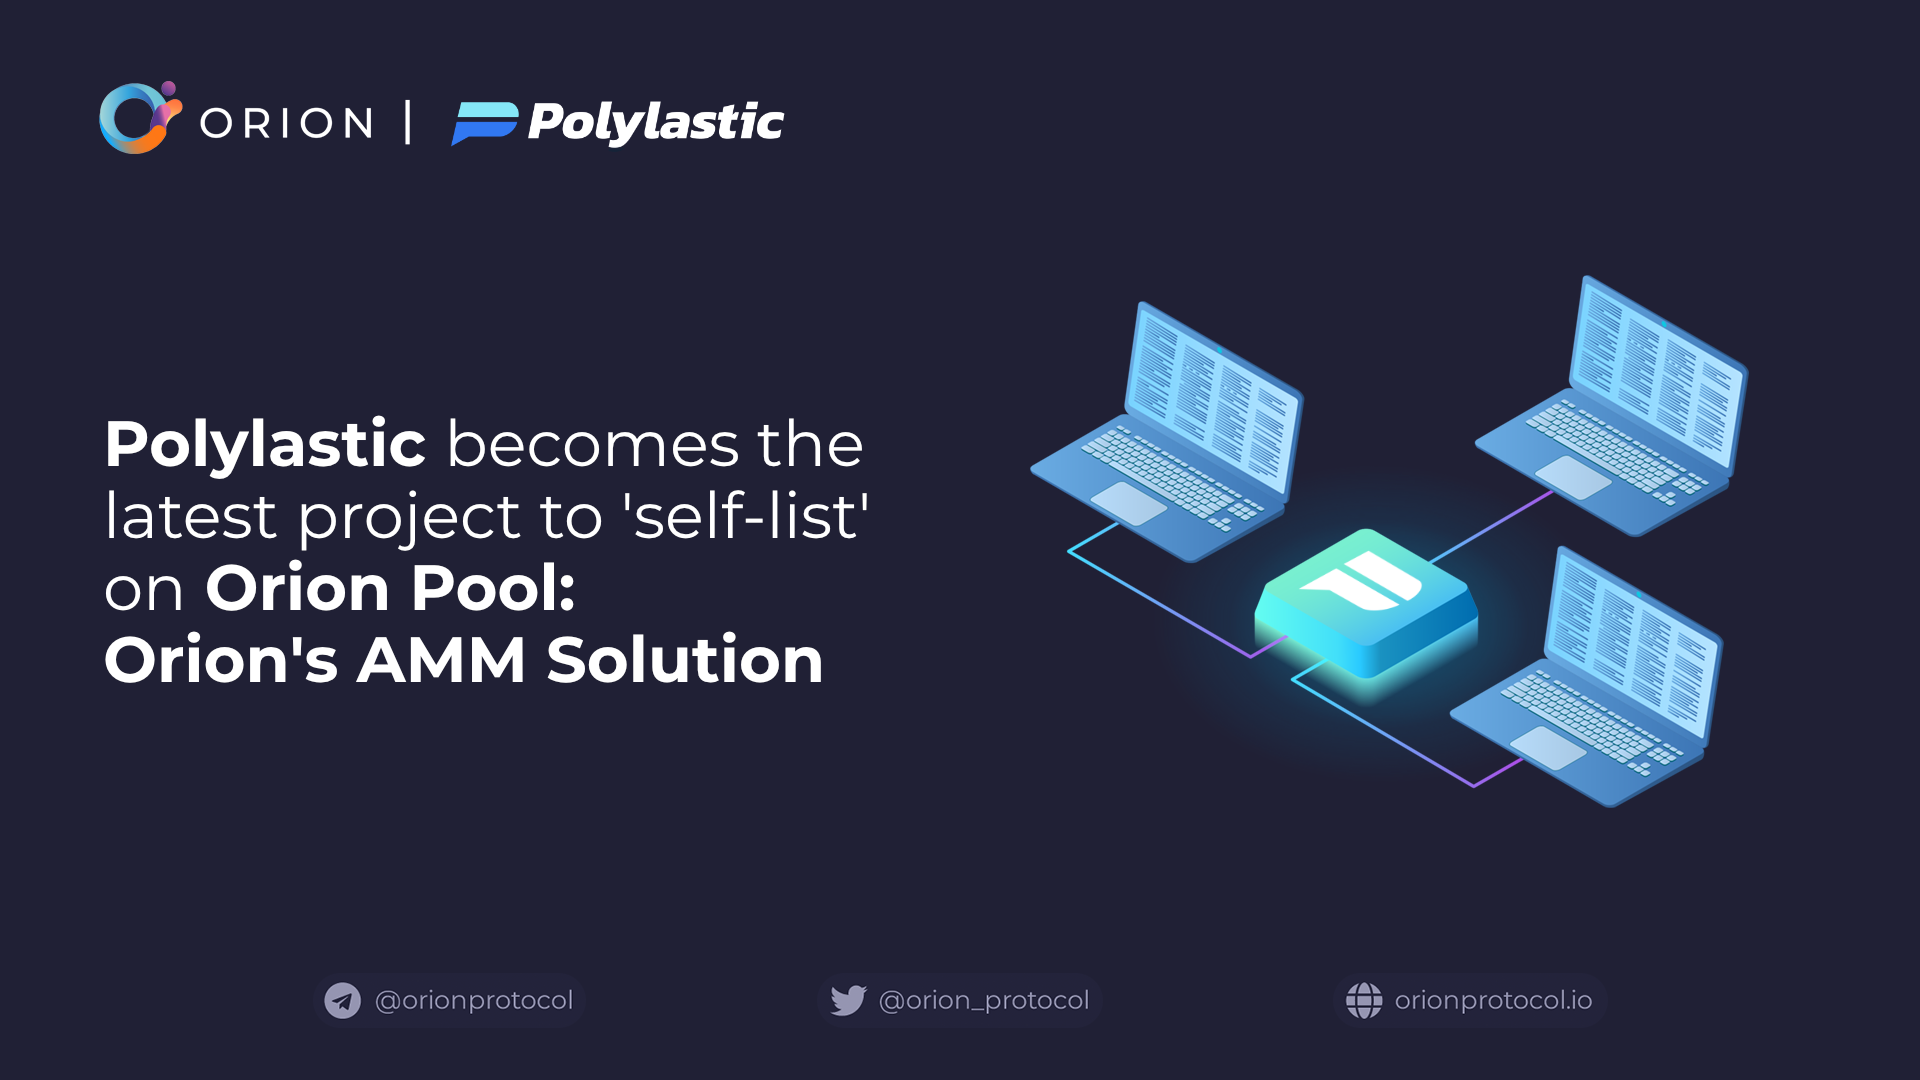 Polylastic to 'self-list' on Orion Pool